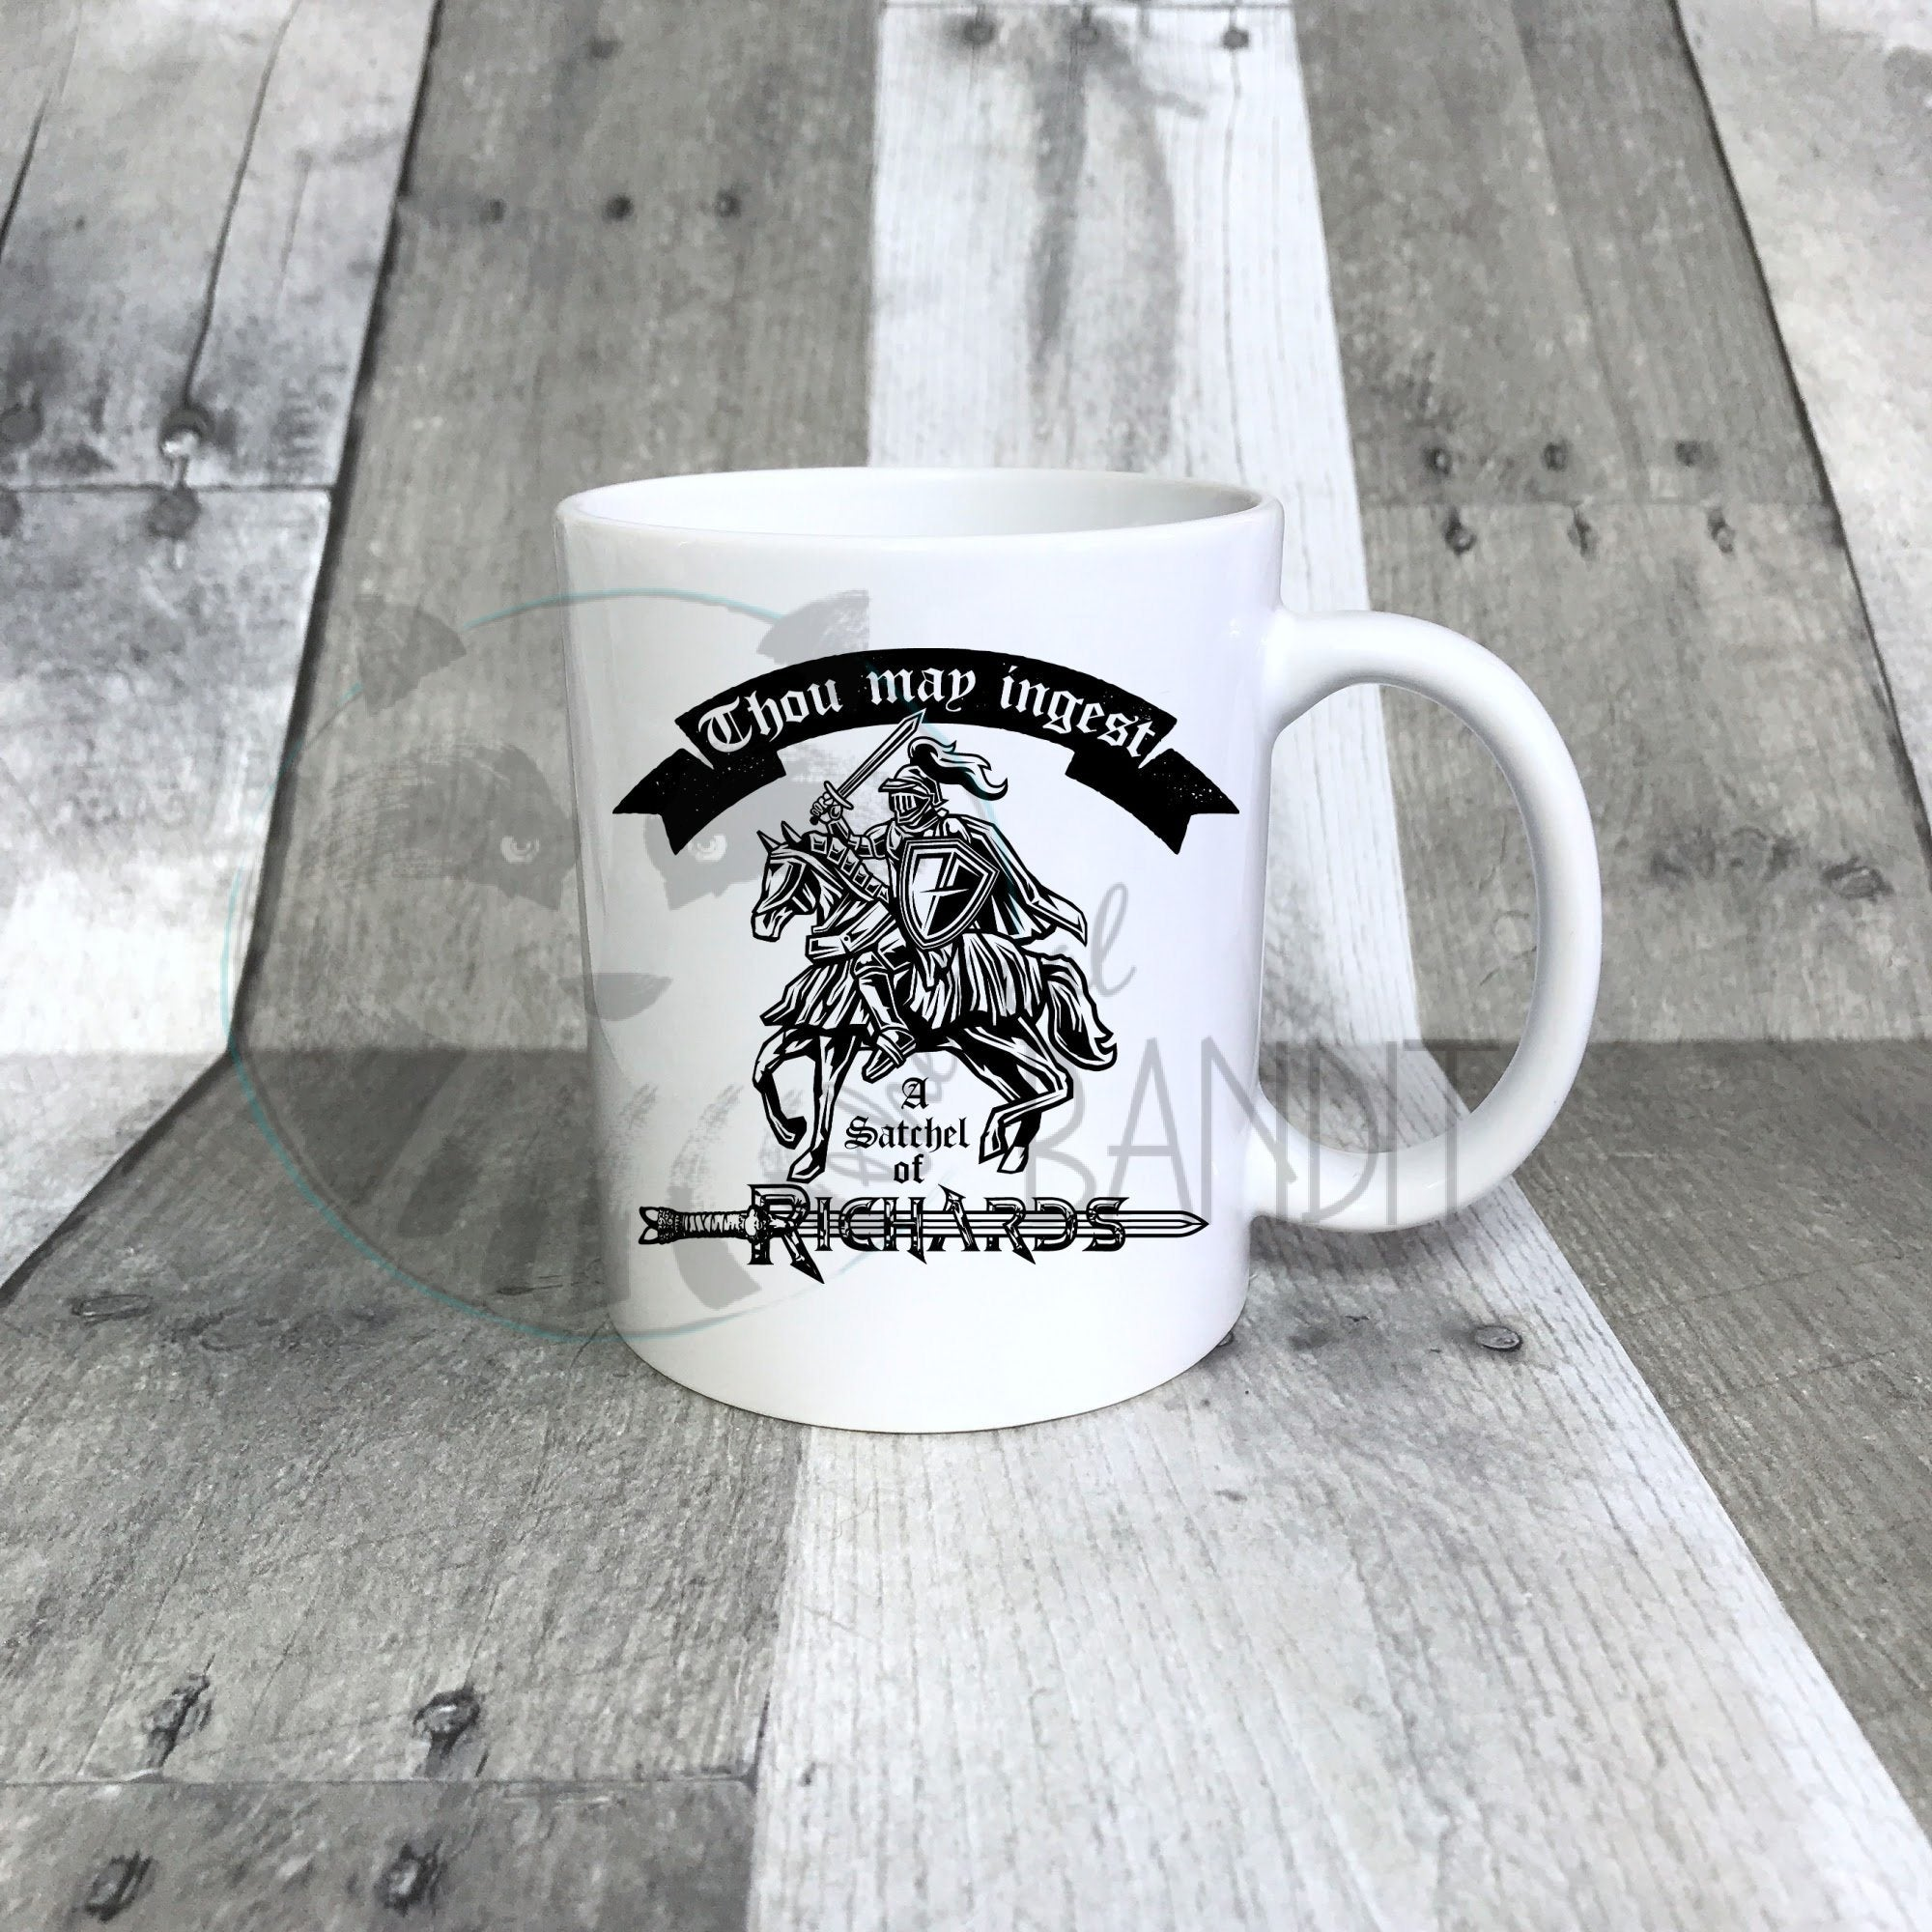 Satchel of Richards mug mug The Teal Bandit